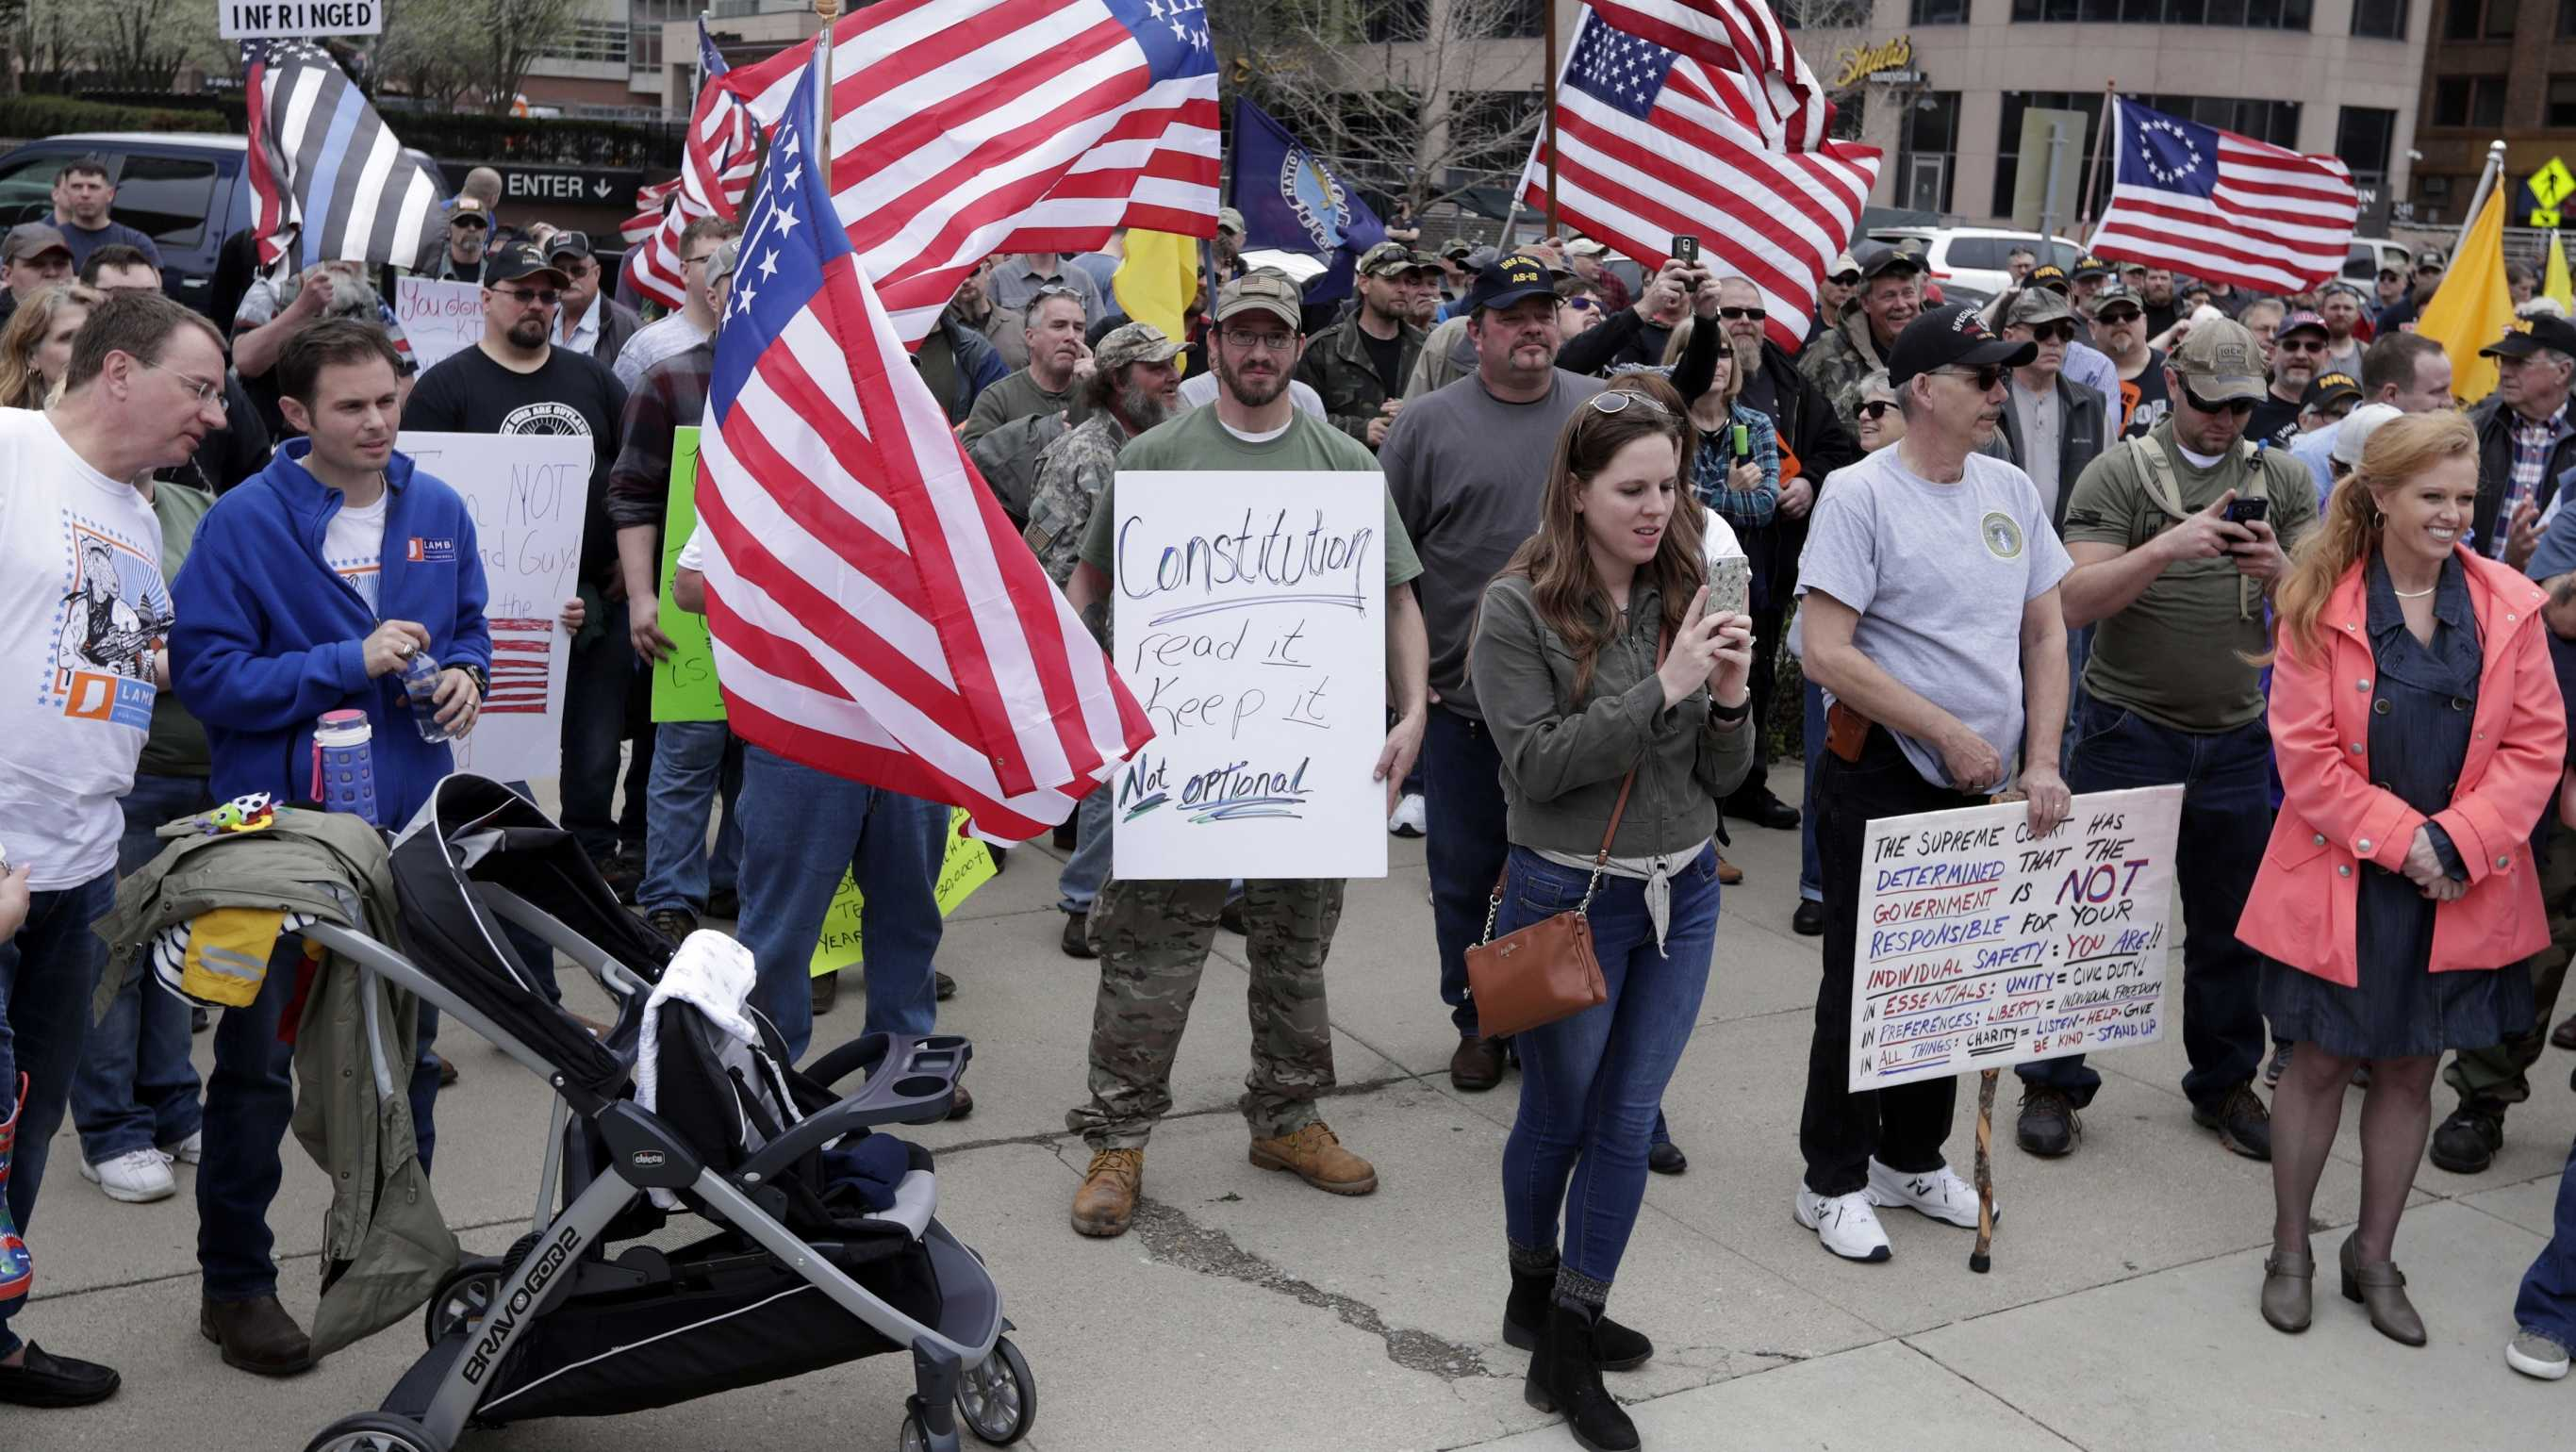 People participate in a gun-rights rally at the state capitol, Saturday, April 14, 2018, in Indianapolis.